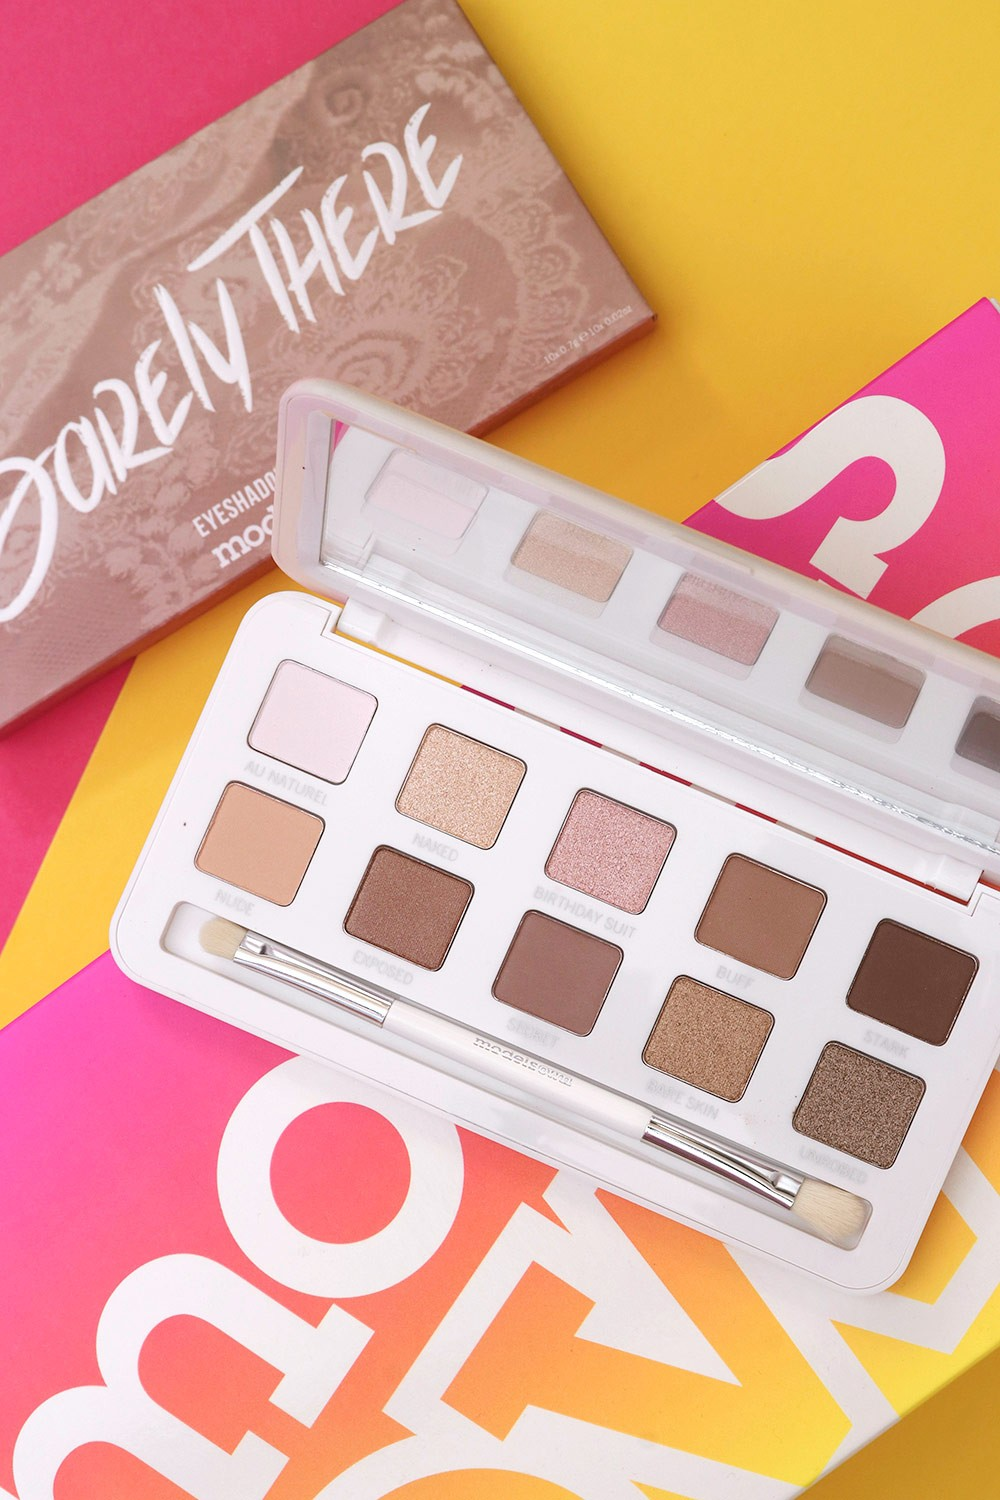 The Models Own Barely There Eyeshadow Palette Is a Perfect Way to Dip Your Toe Into the World of Neutral Shadows